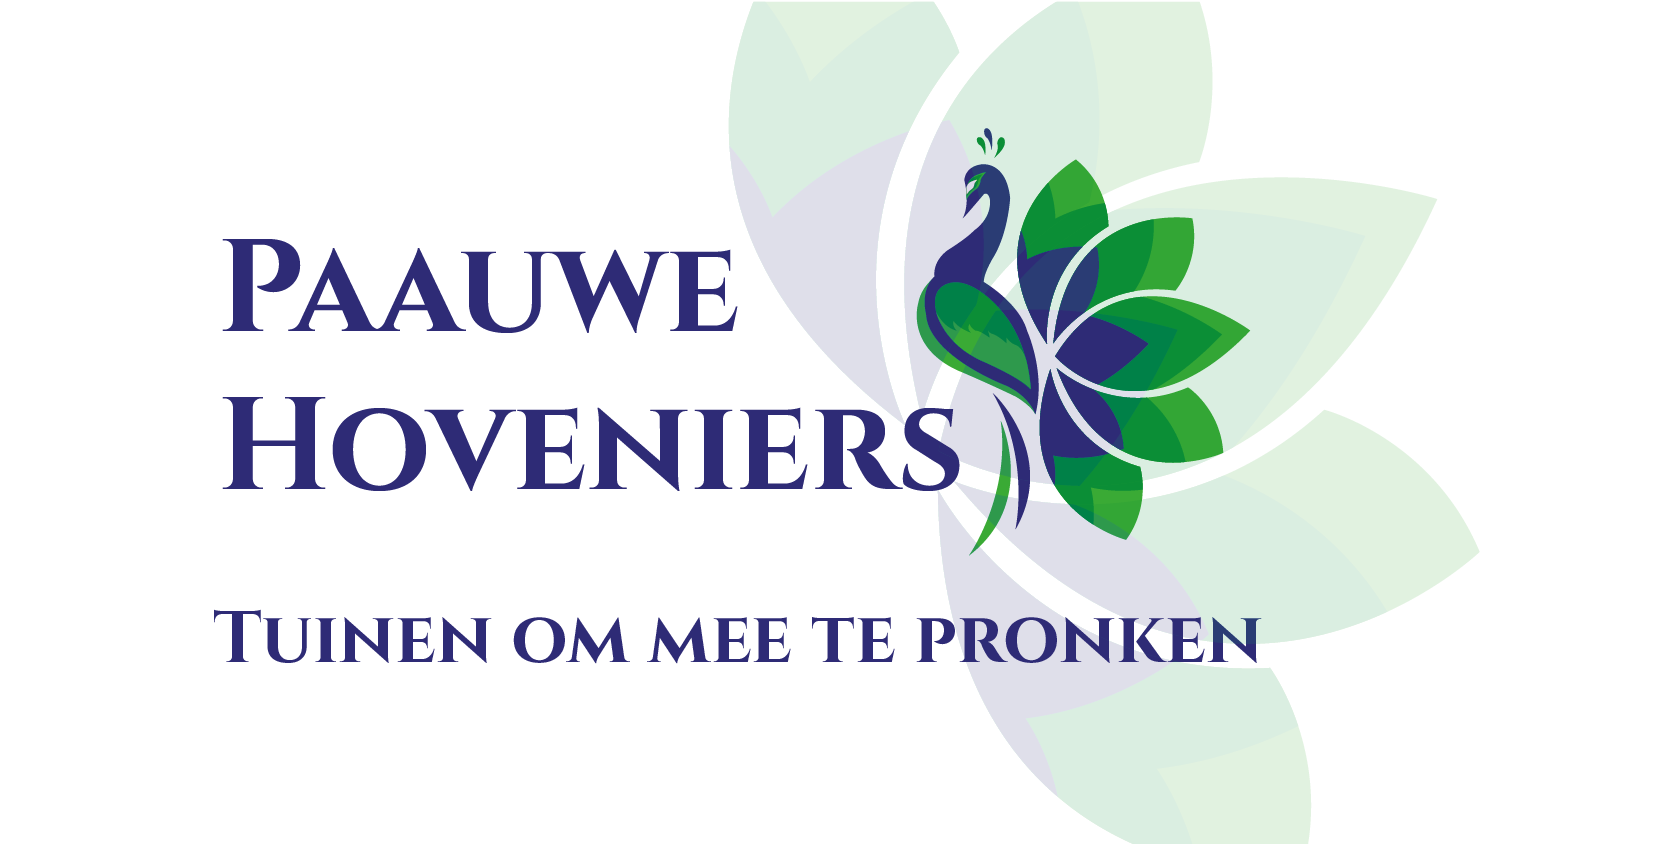 Paauwe Hoveniers